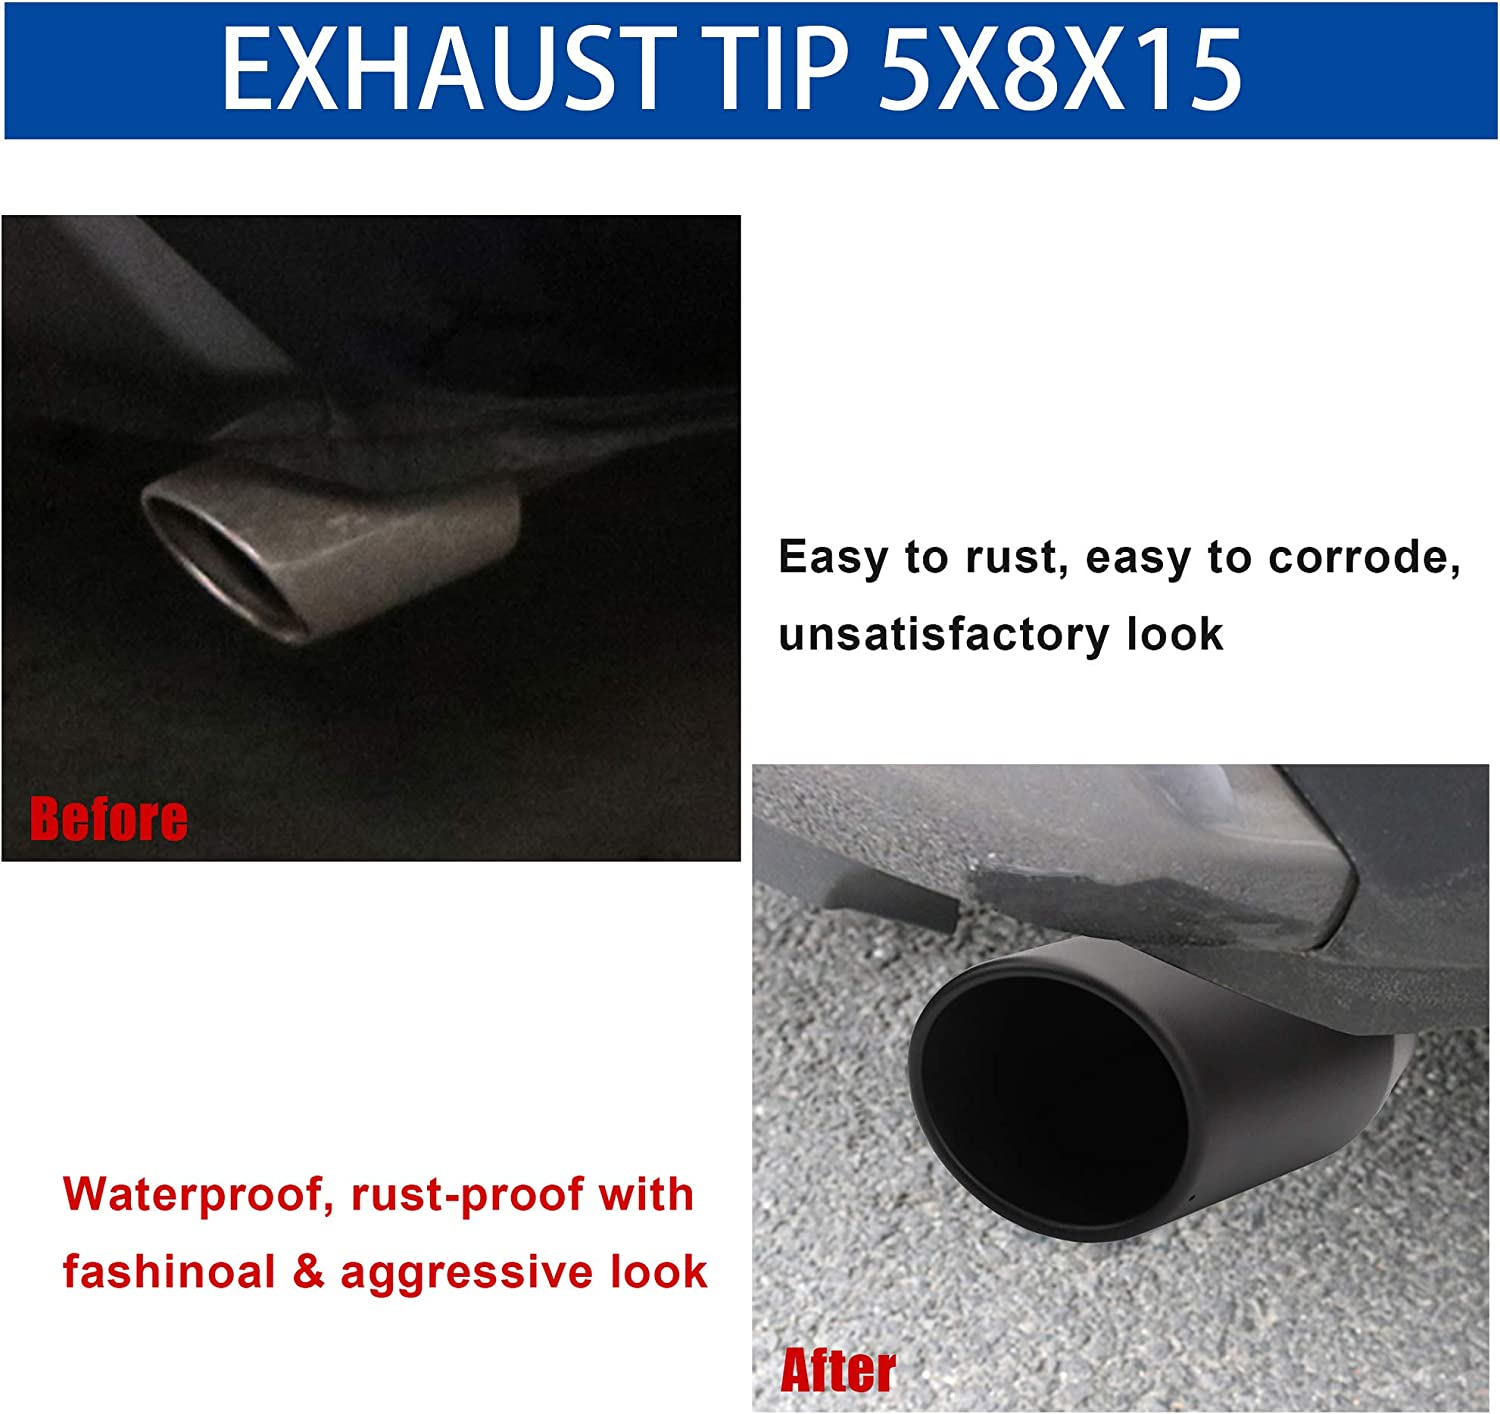 3 inlet to 4.5 outlet Exhaust TIP,3 x 4.5 x 9 in Black Stainless Steel Exhaust Tip Bolt On Design